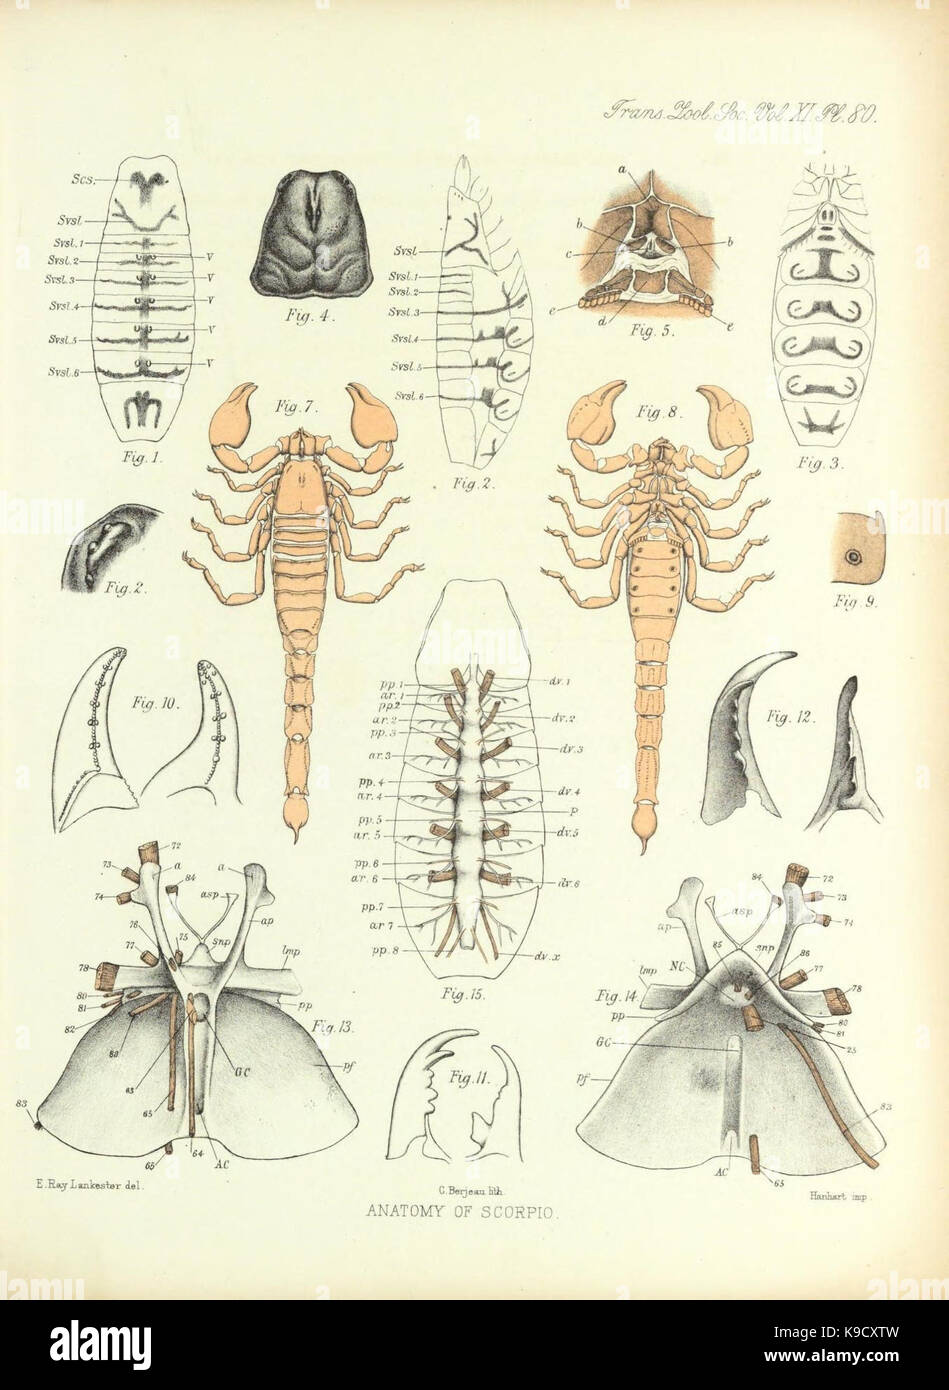 On Muscular Endoskeletal Systems Limulus Stockfotos & On Muscular ...